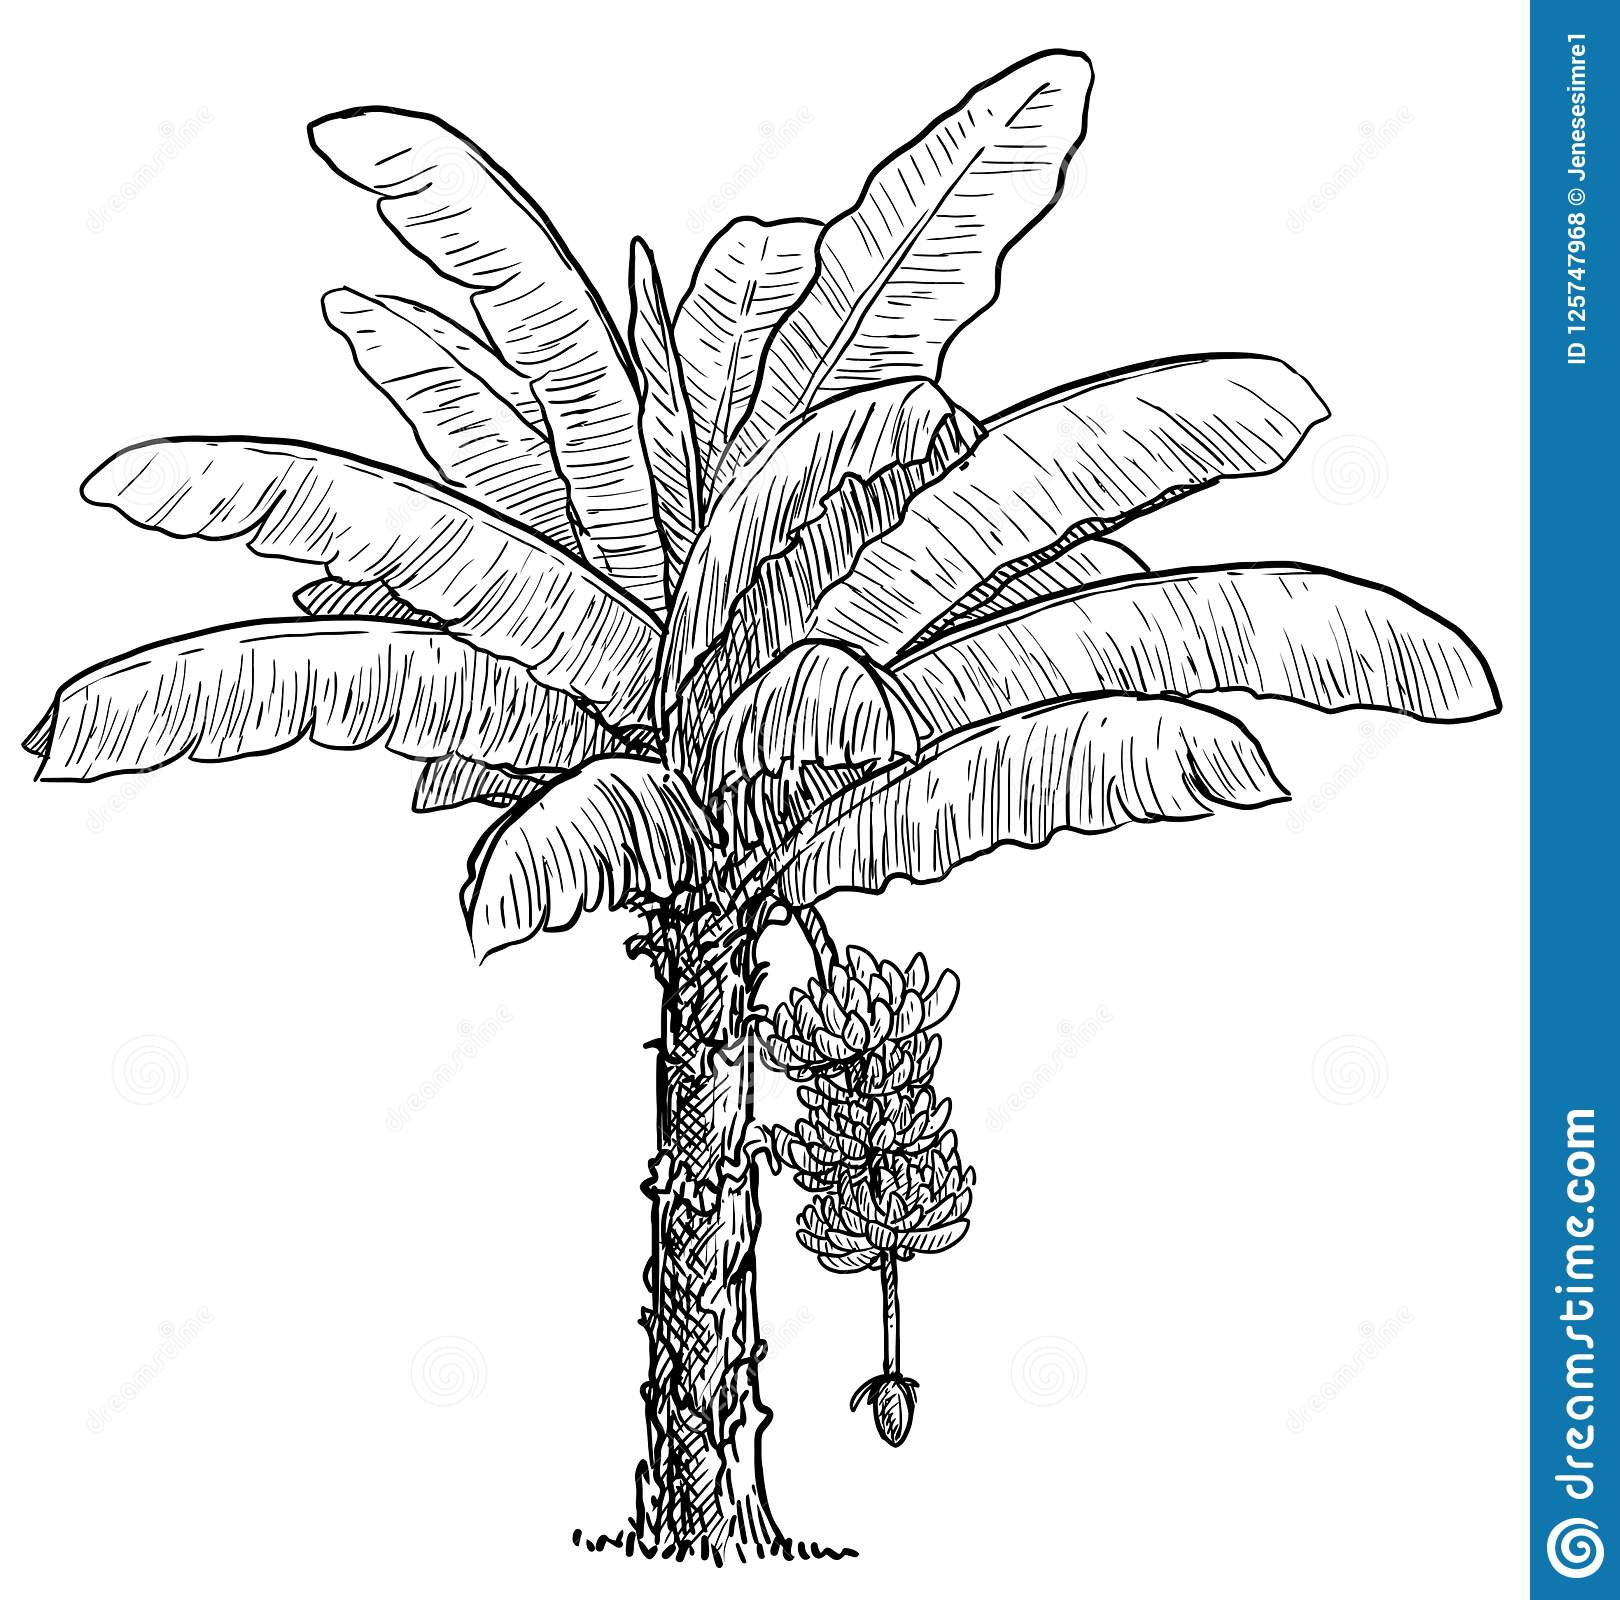 Banana Tree Illustration Drawing Engraving Ink Line Art Vector Stock Vector Illustration Of Grow Flora 125747968